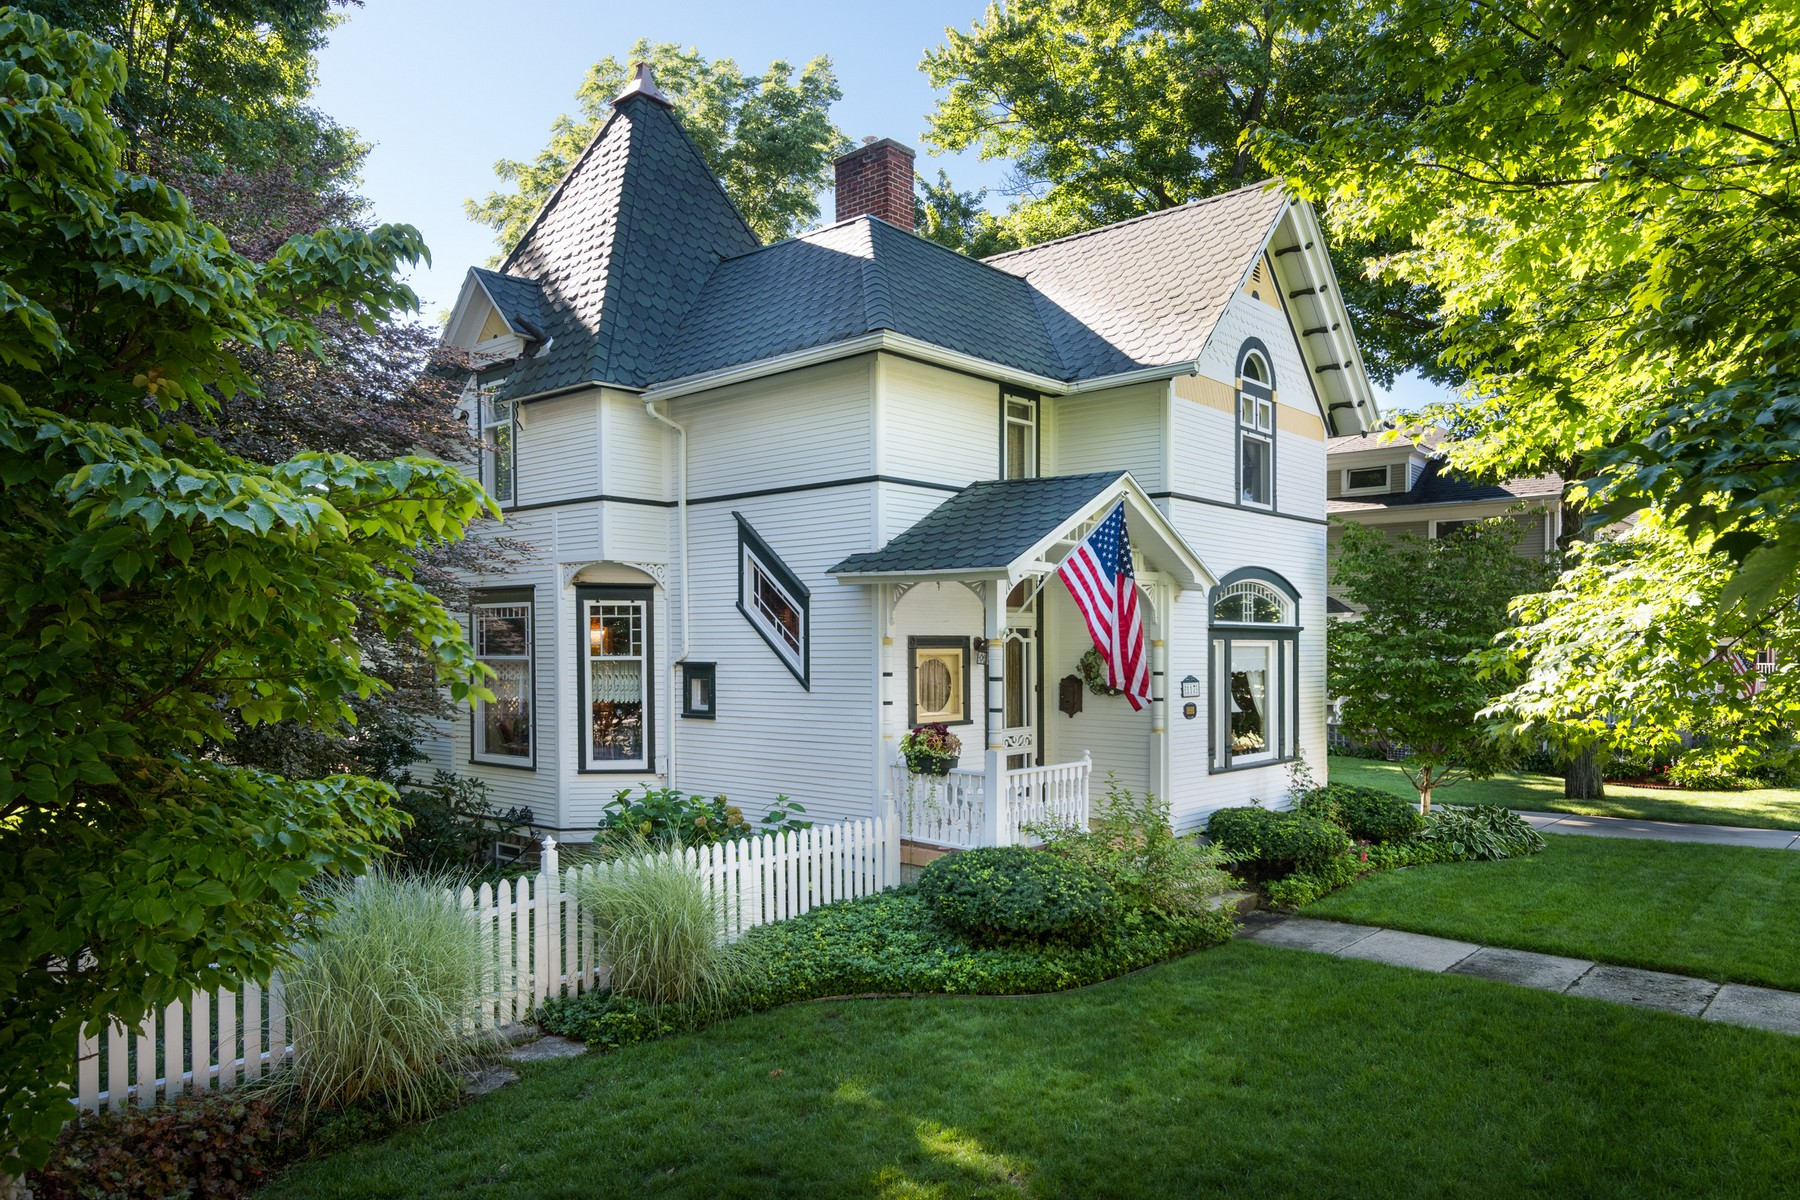 Casa Unifamiliar por un Venta en Charming Victorian 117 S. Church Zeeland, Michigan, 49464 Estados Unidos